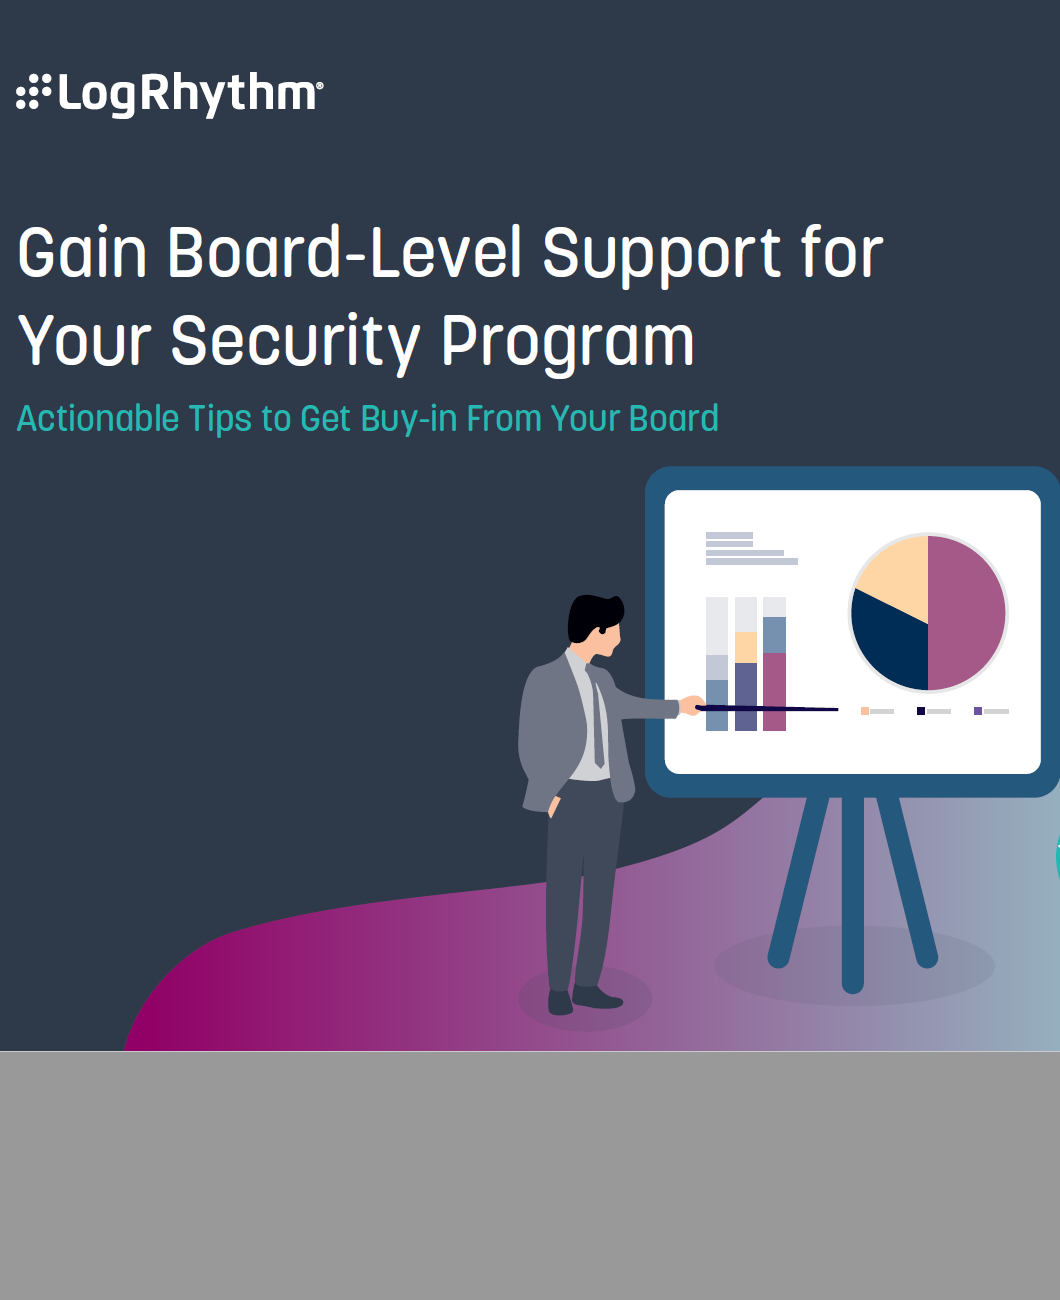 Gain Board Support for Security